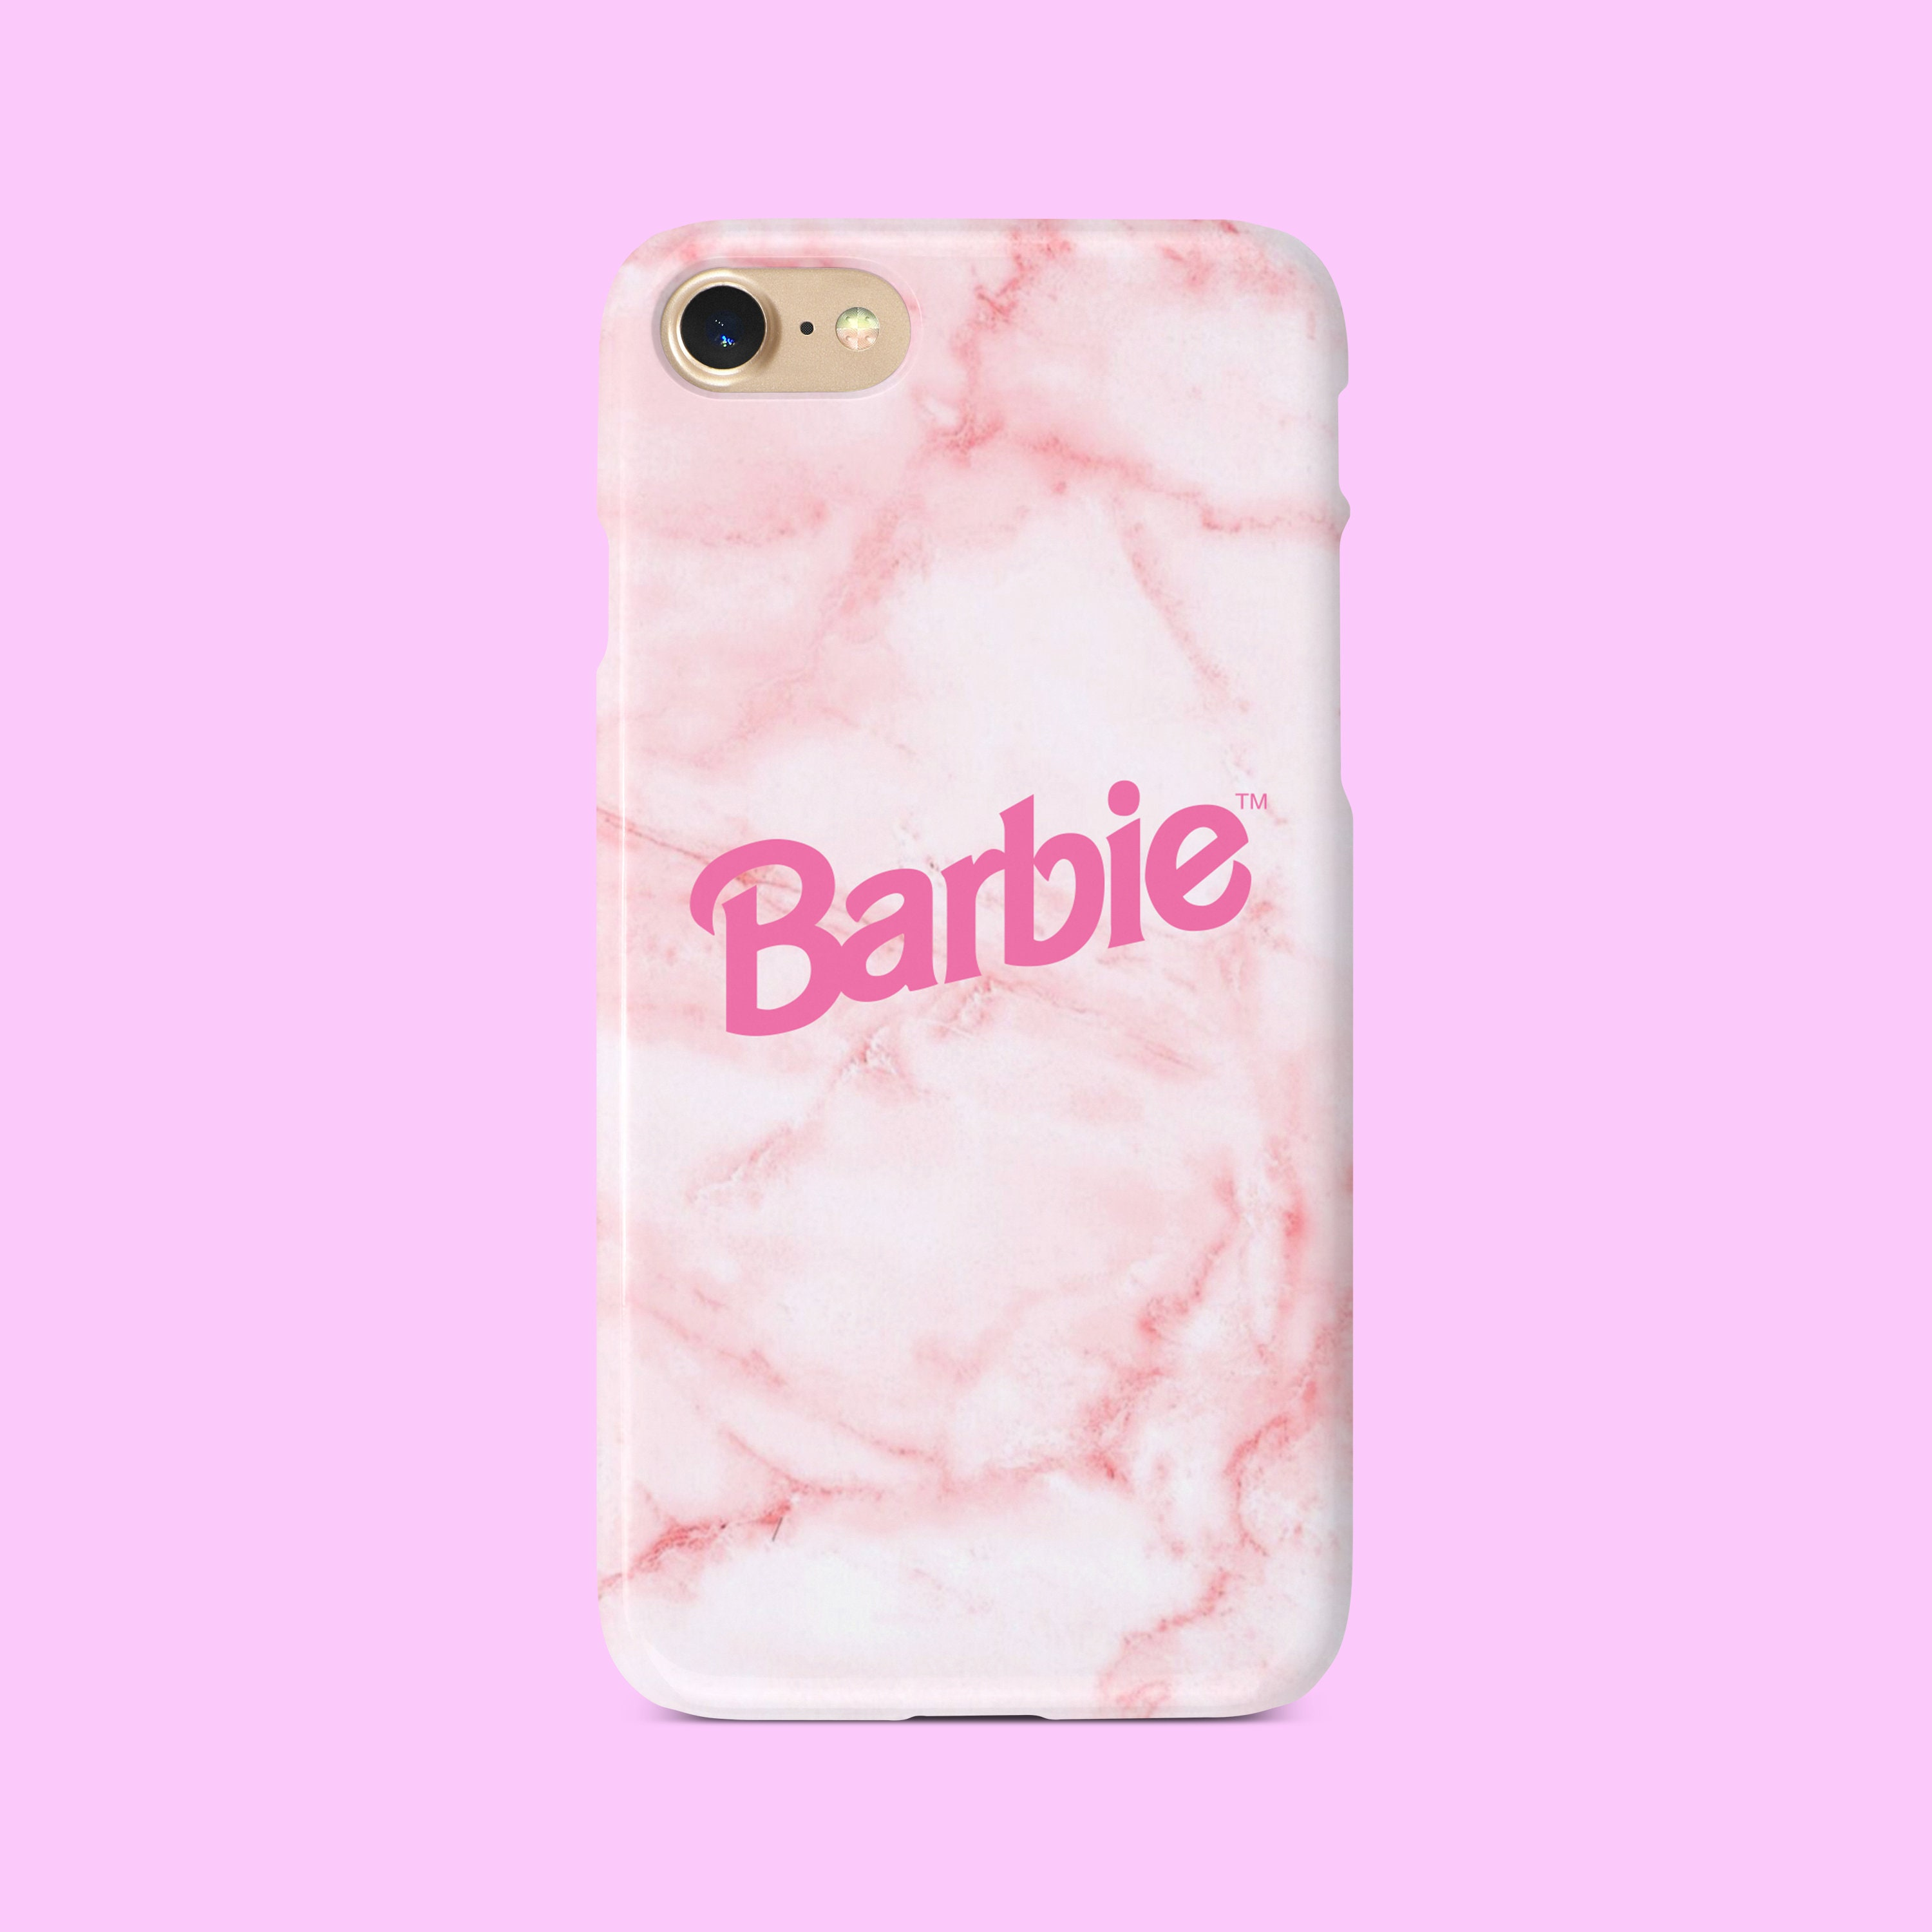 low priced 7bfb3 01fb4 Barbie Pink Phone Case iPhone Phone Case Cover For iPhone 6/6, 7, 8, 7+,  8+, X